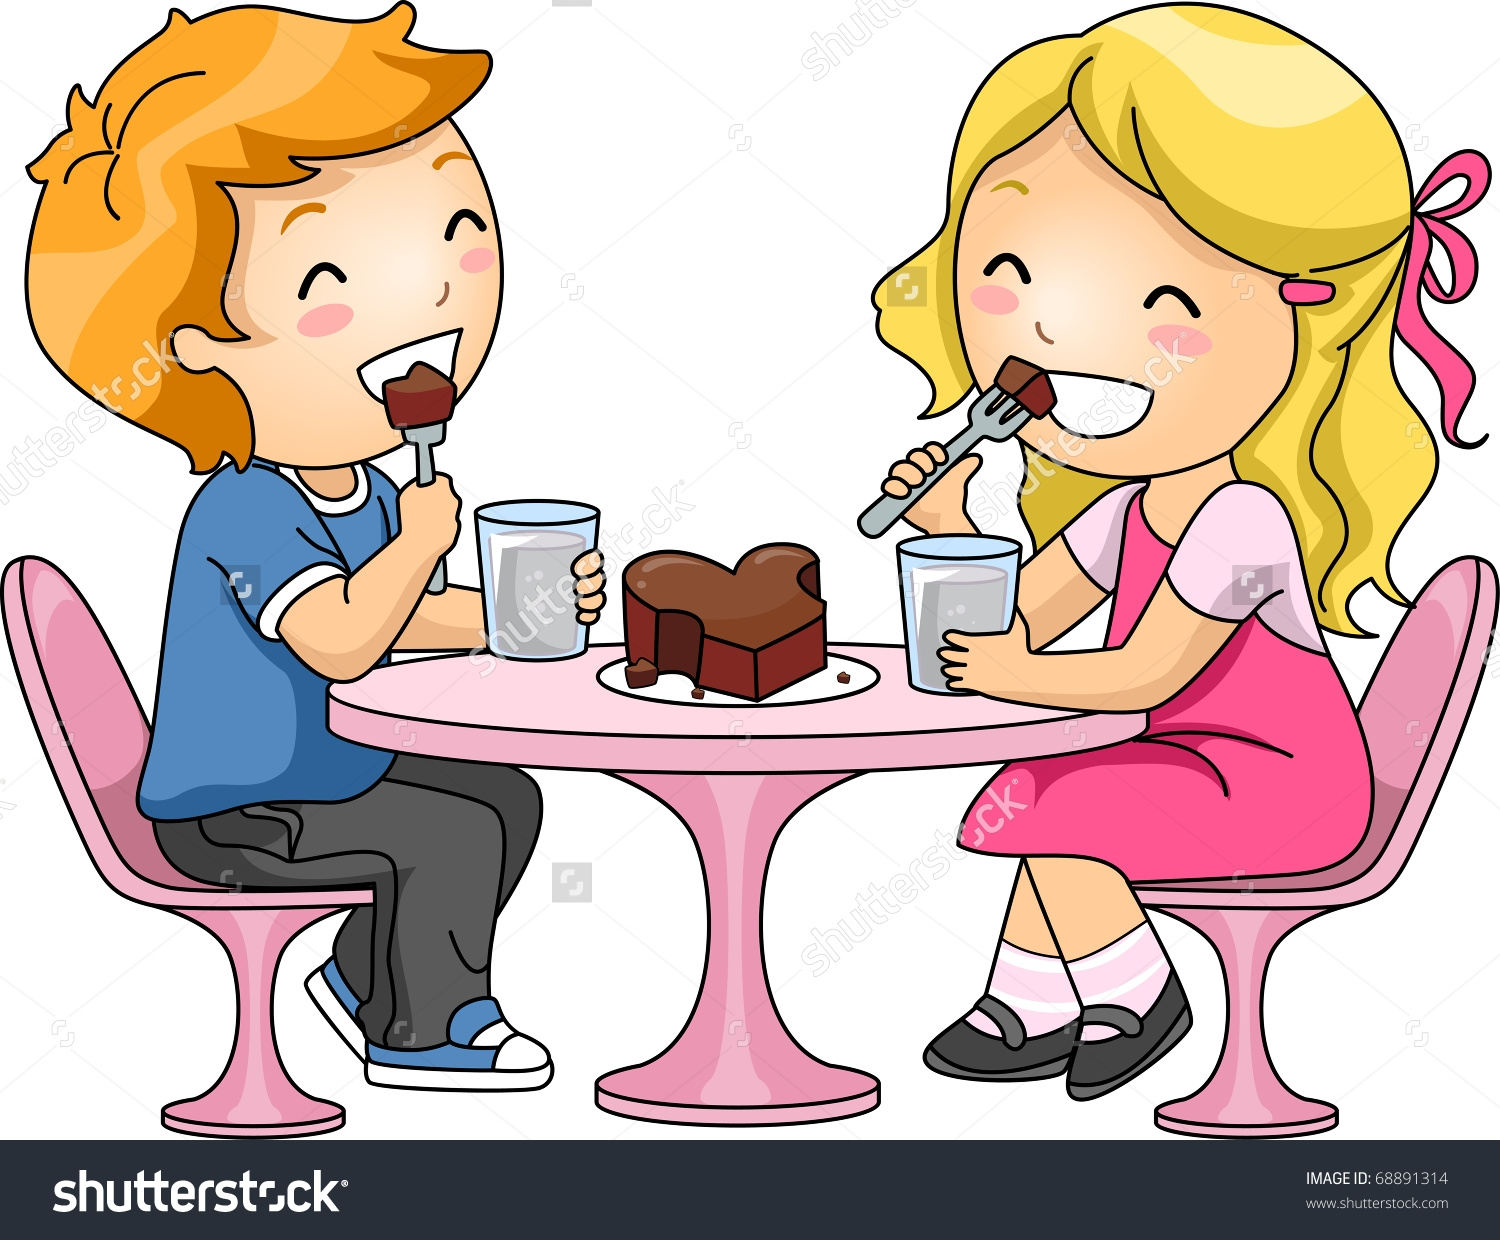 Sharing clipart 10 » Clipart Station.